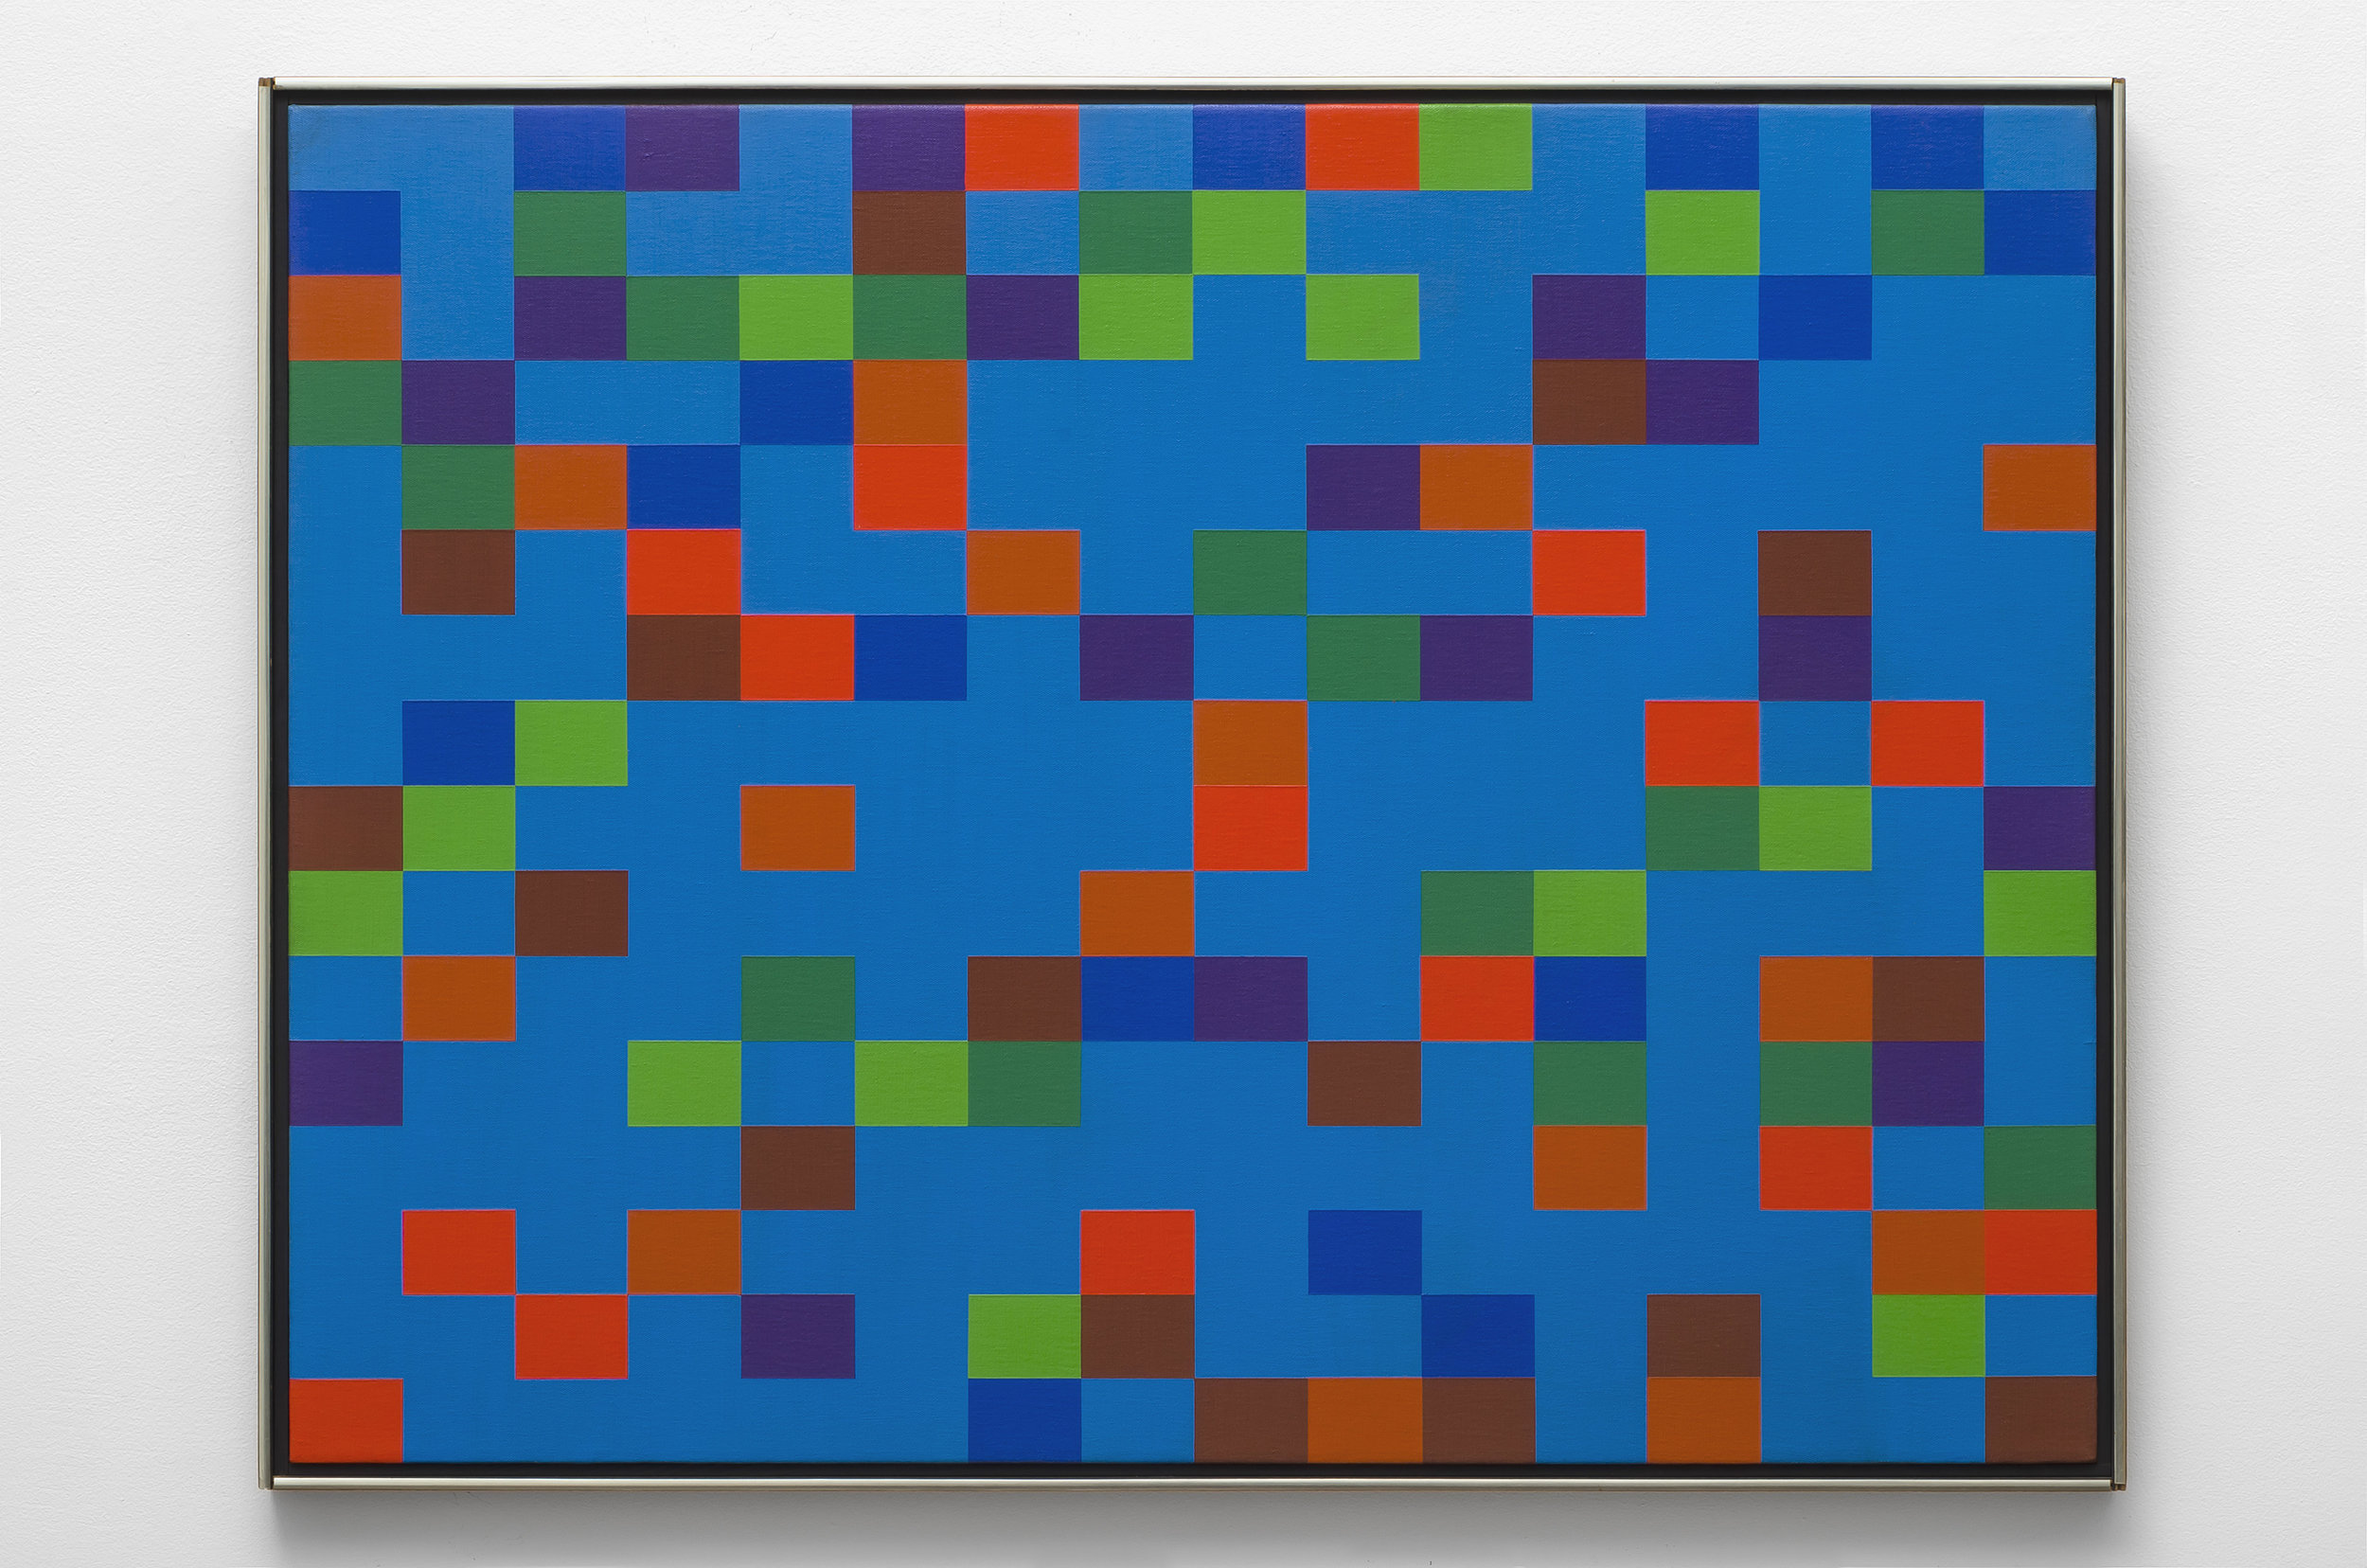 #7 , 1972  oil on canvas 30 x 40 inches; 76.2 x 101.6 centimeters